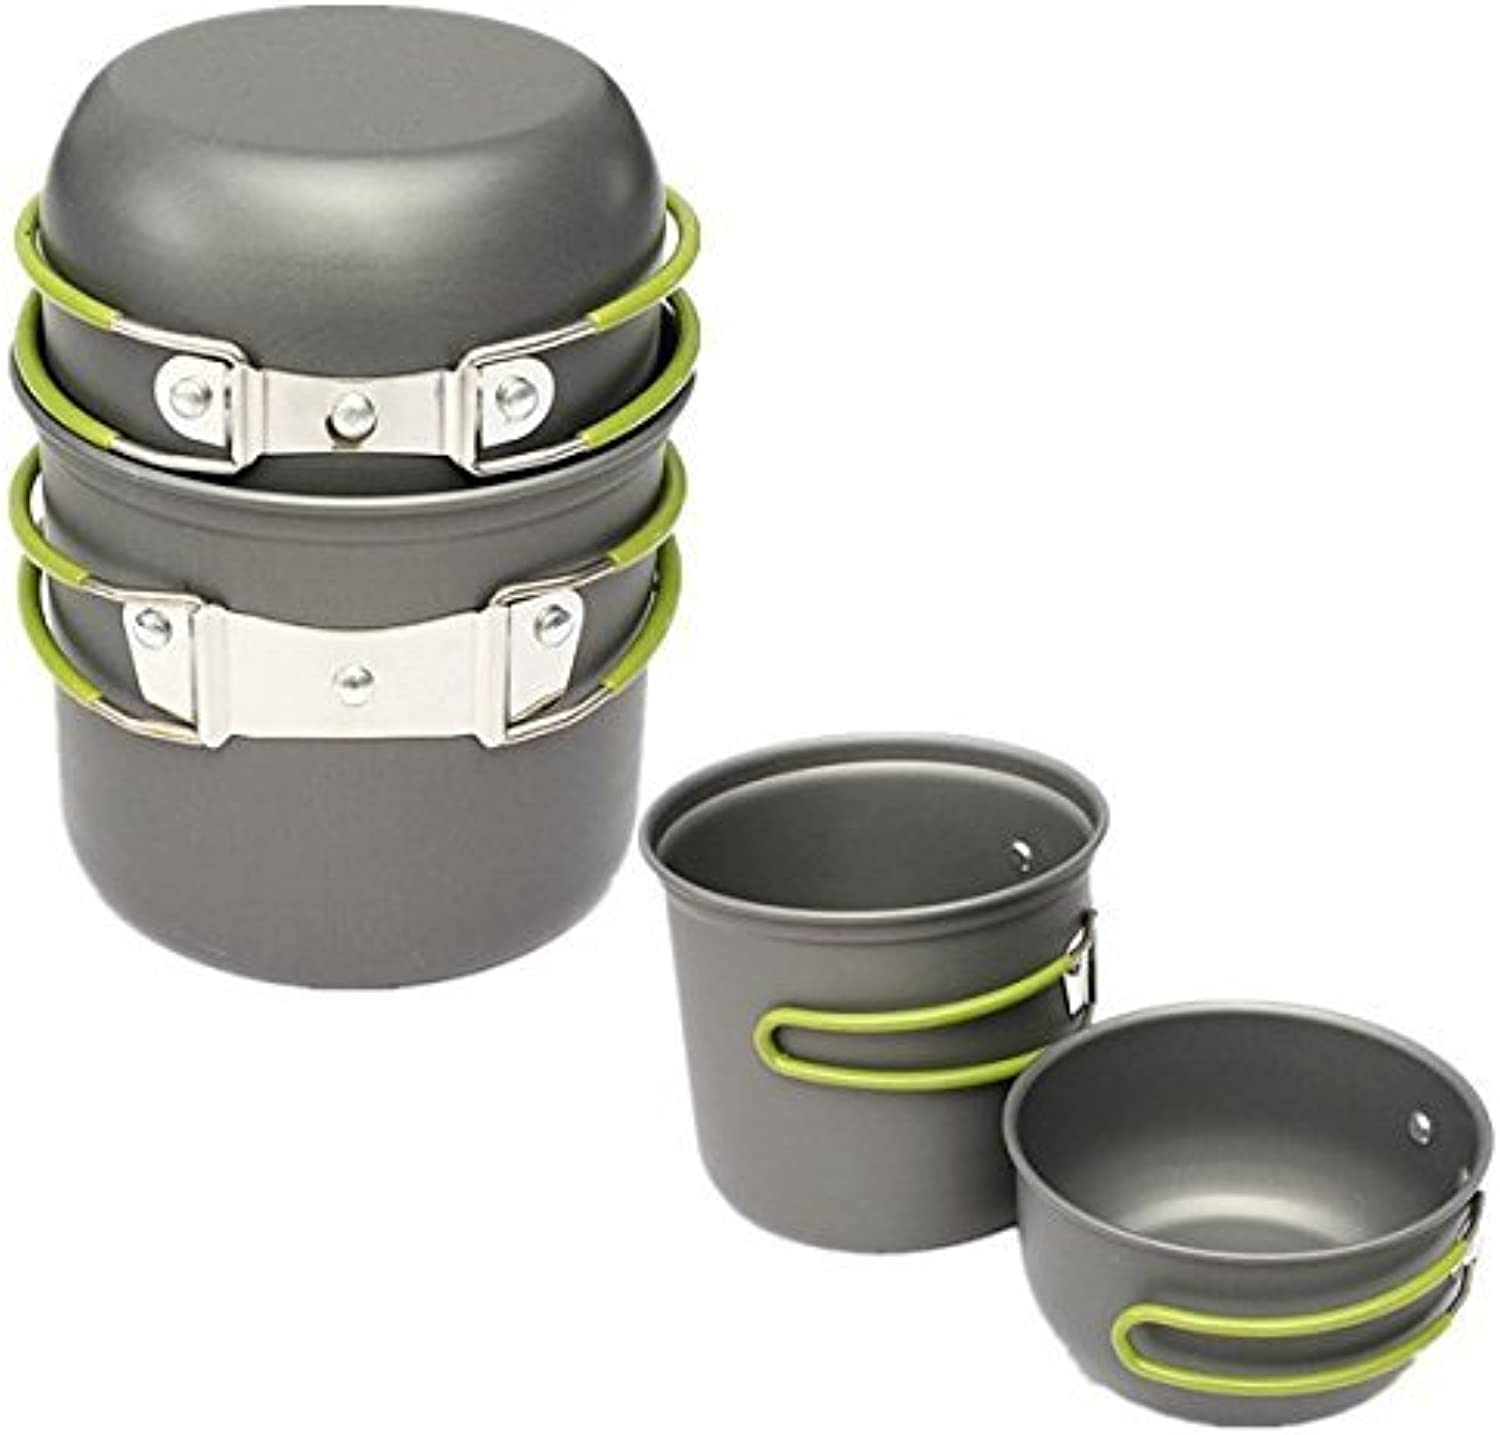 2 Pcs Outdoor Camping Picnic Cookware Cook Pot Bowl